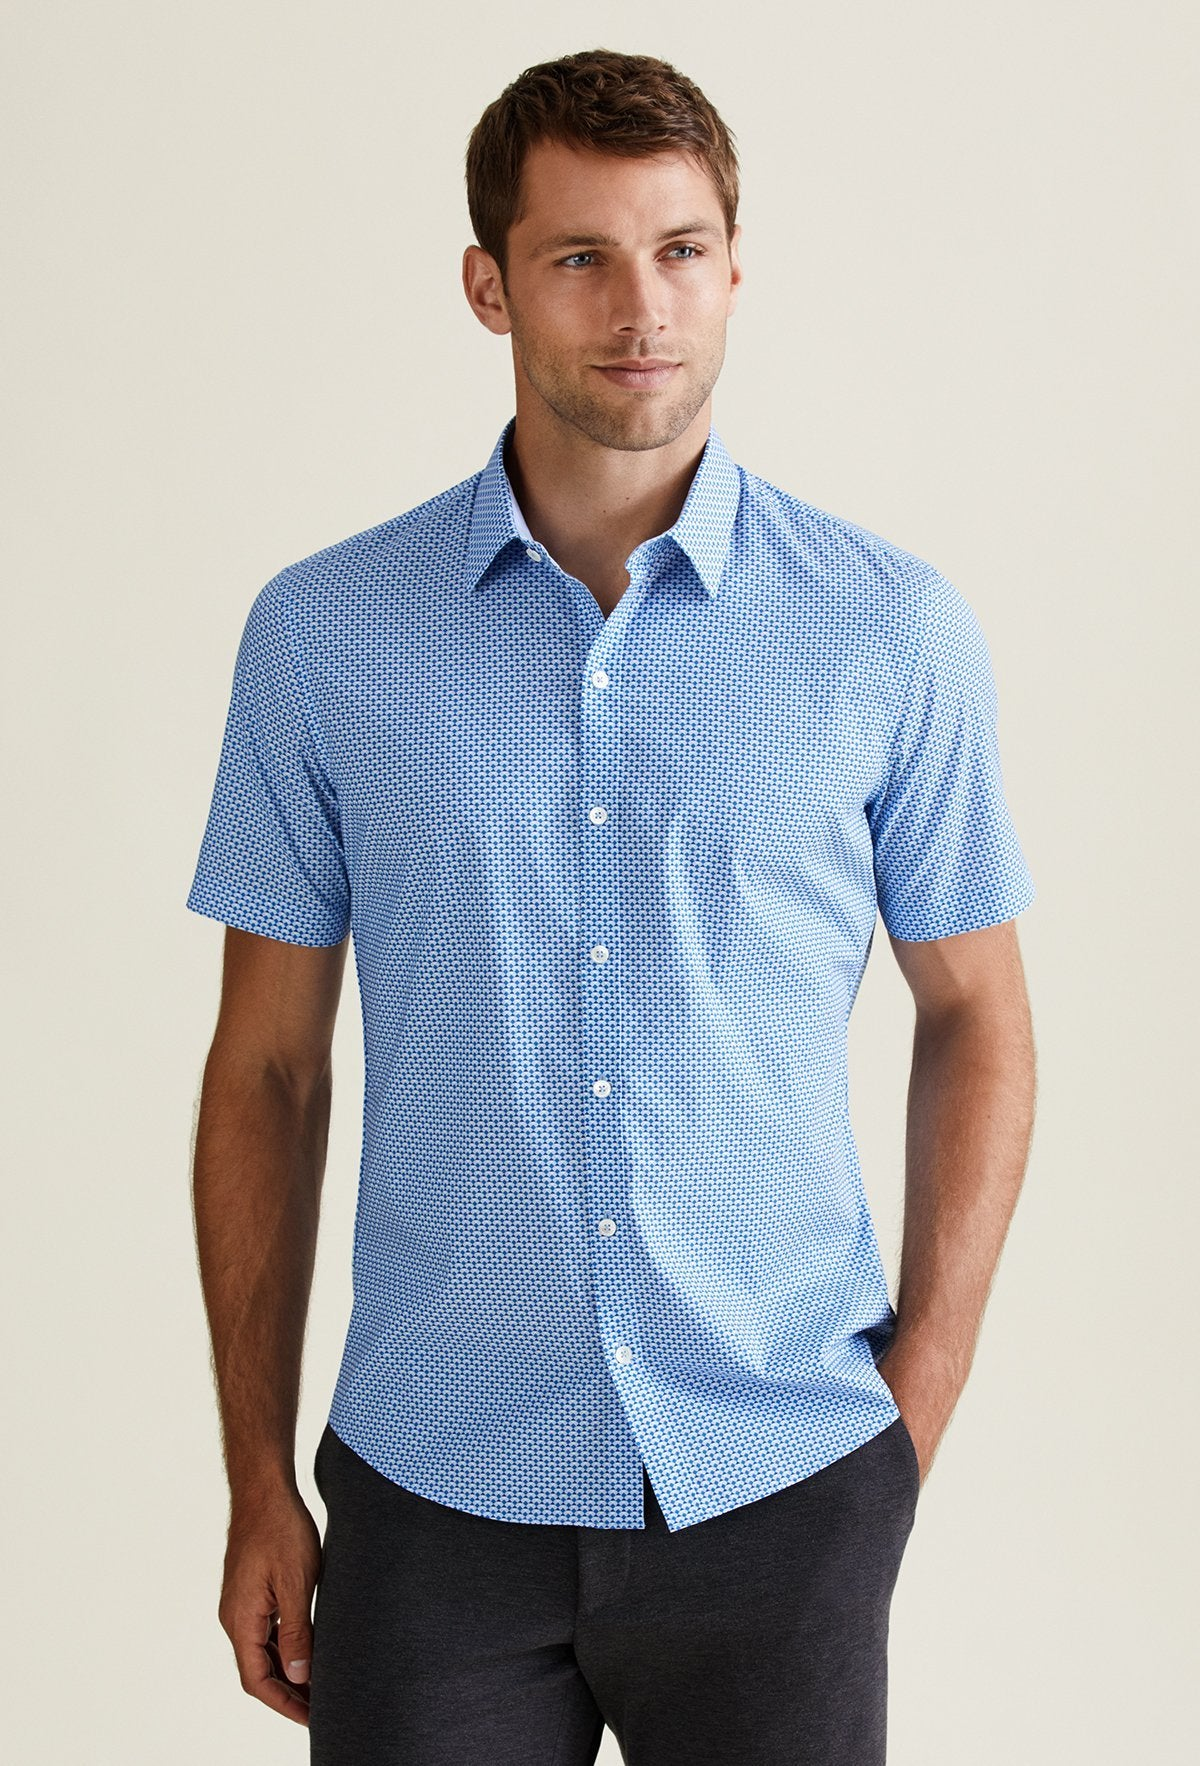 men's light blue preppy short sleeve button down shirt